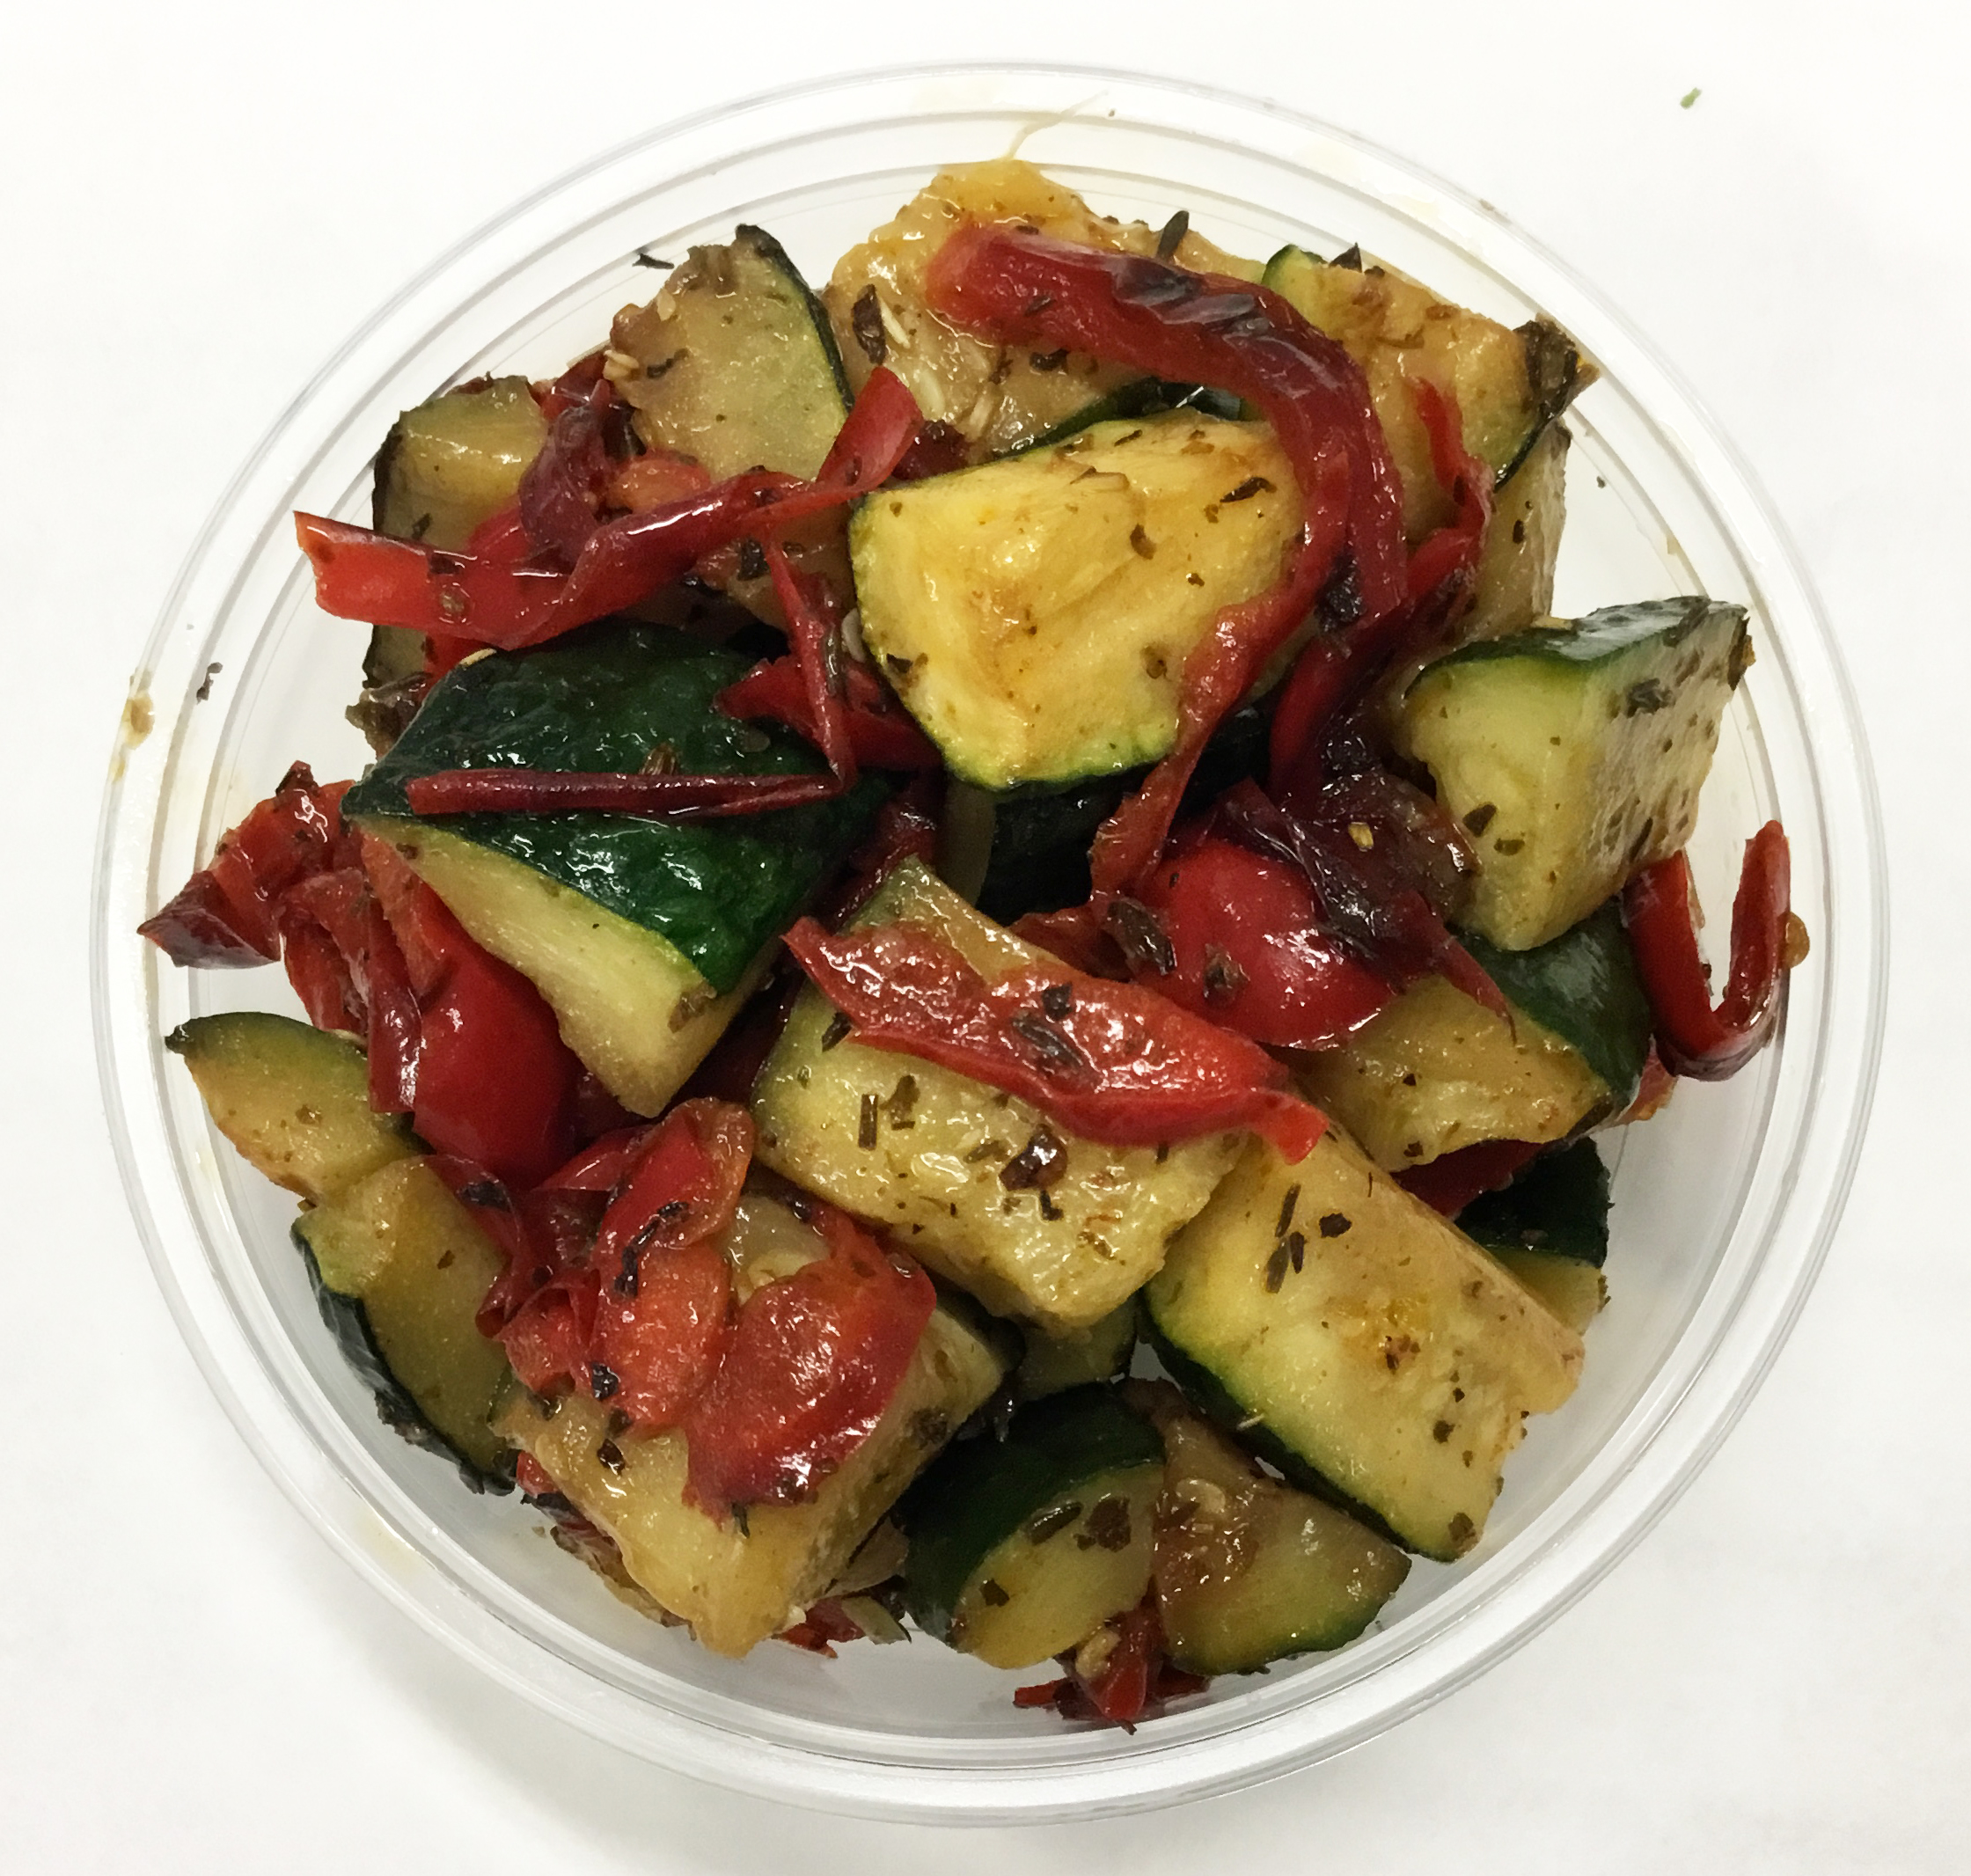 Sauteed zucchini, red bell peppers and herbs de provence.